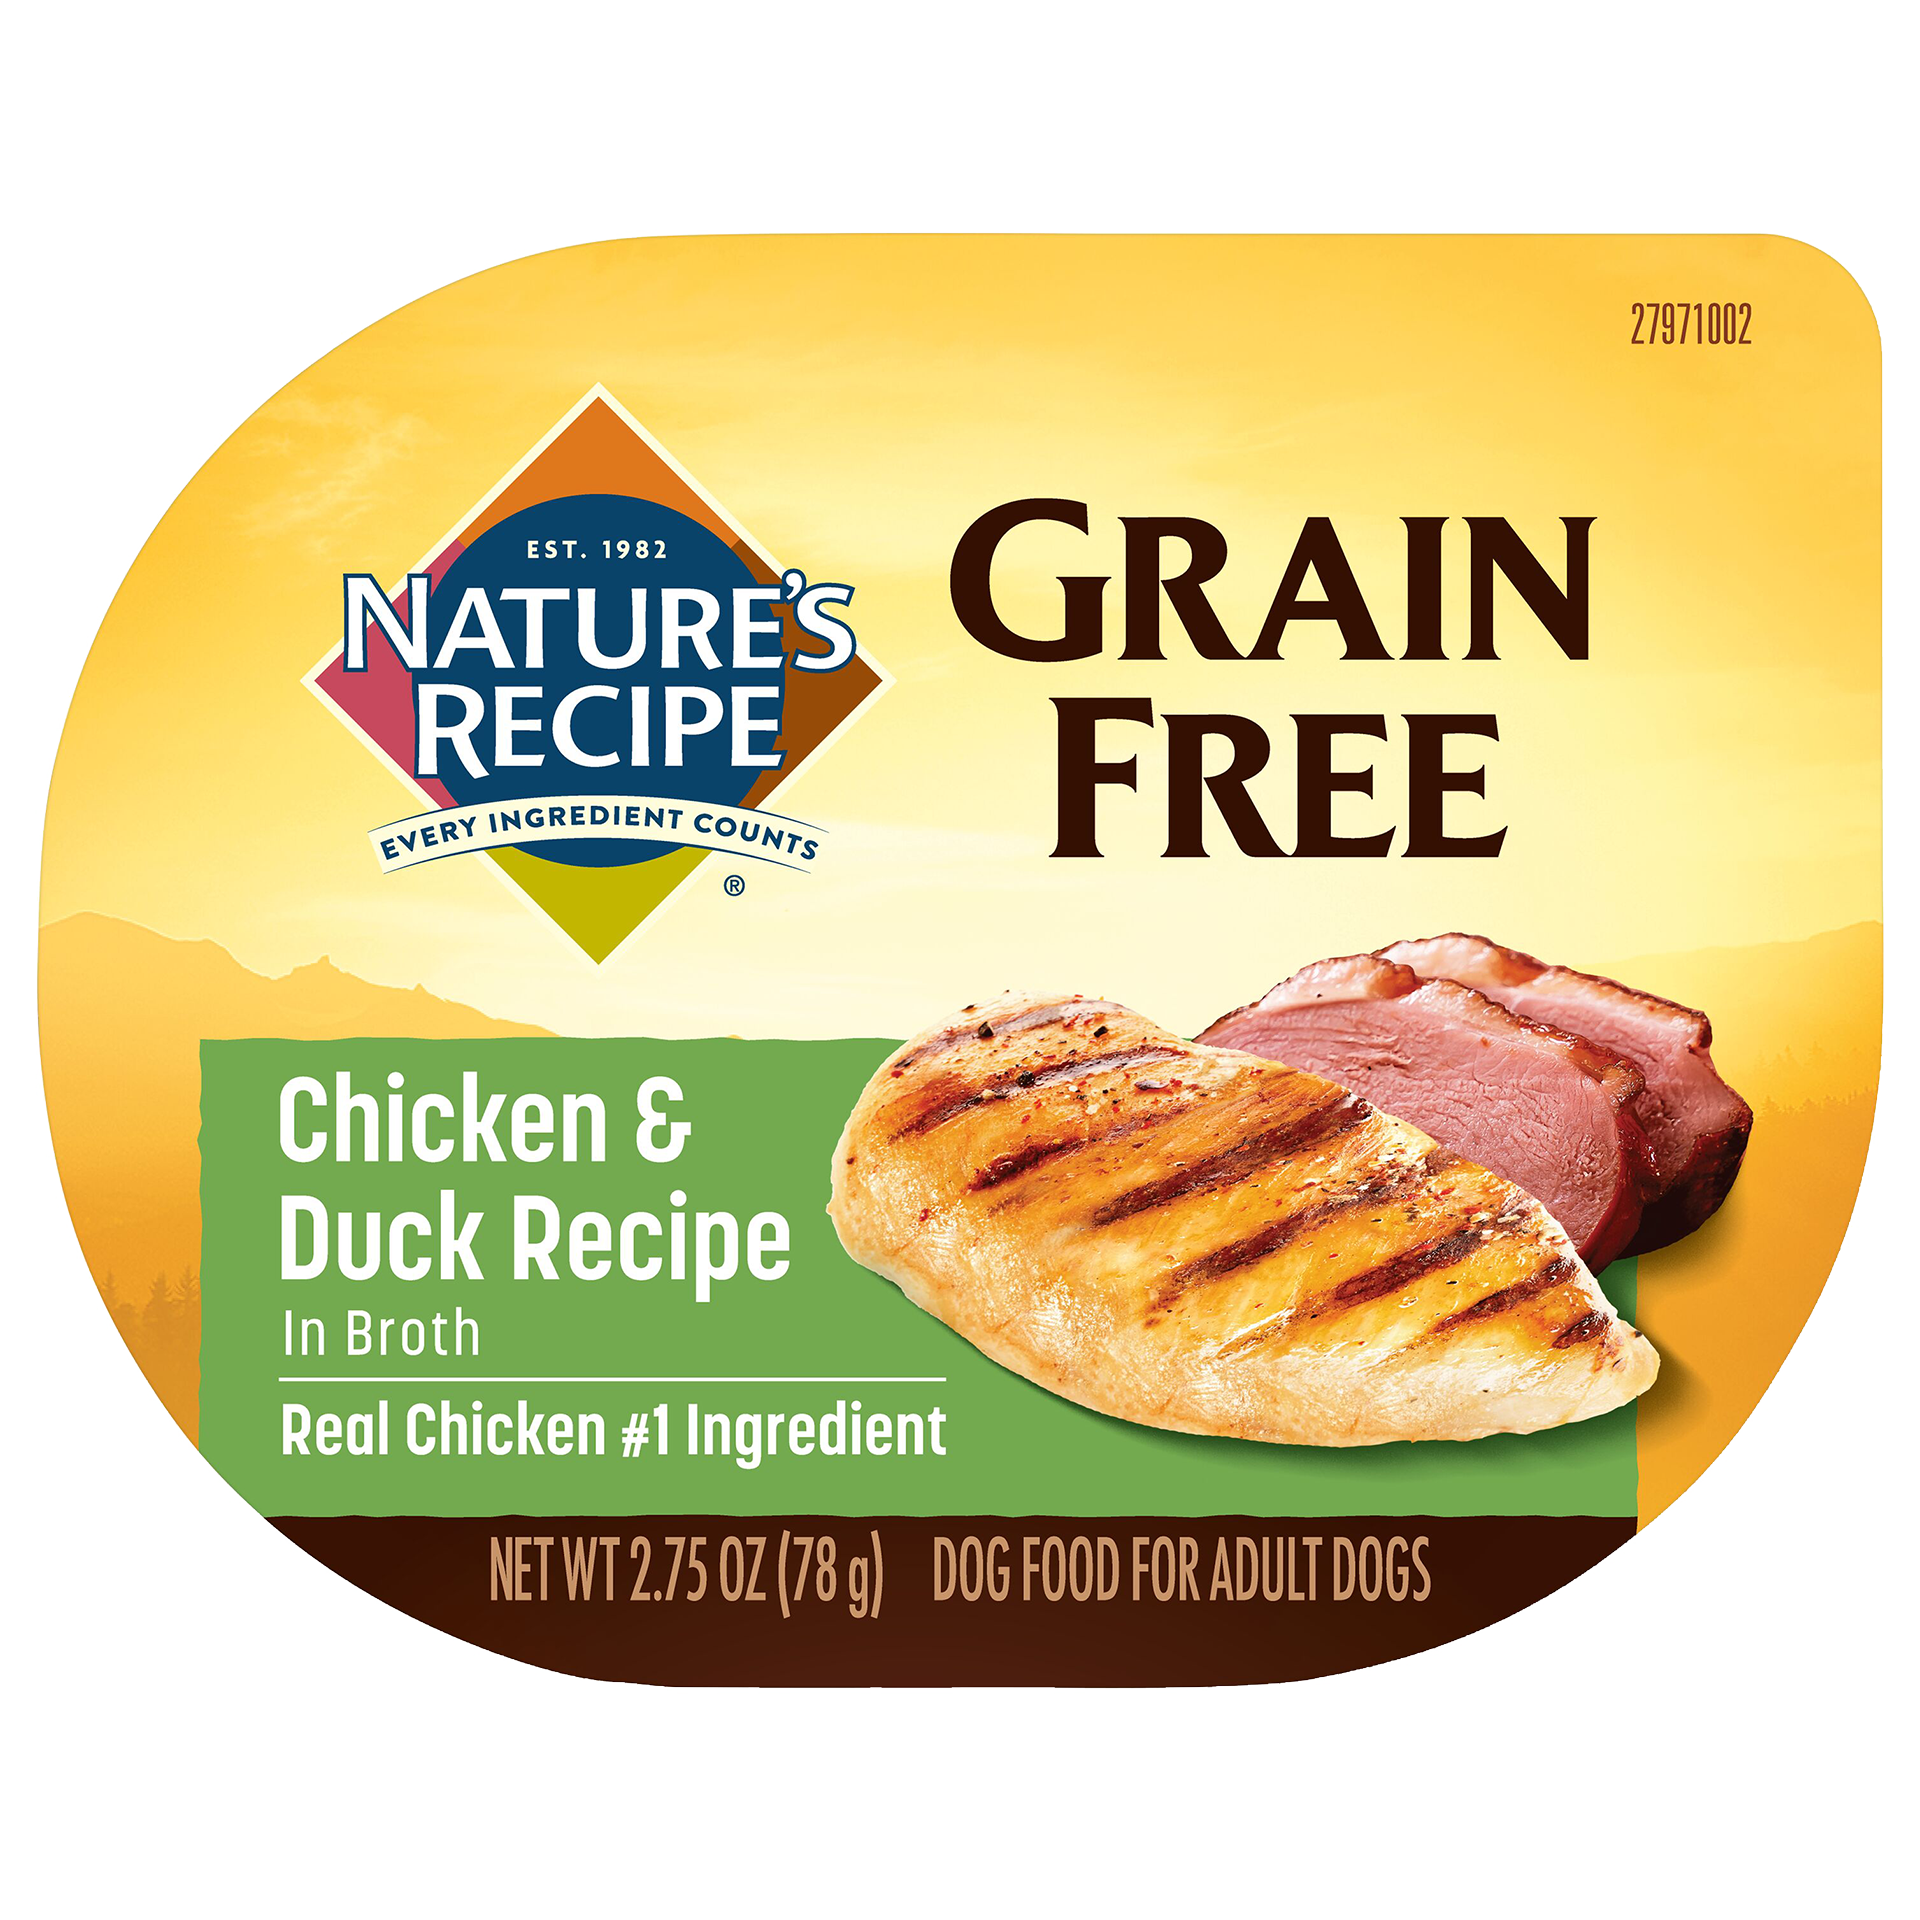 Grain Free Easy to Digest Chicken & DuckRecipeDog Food in Broth